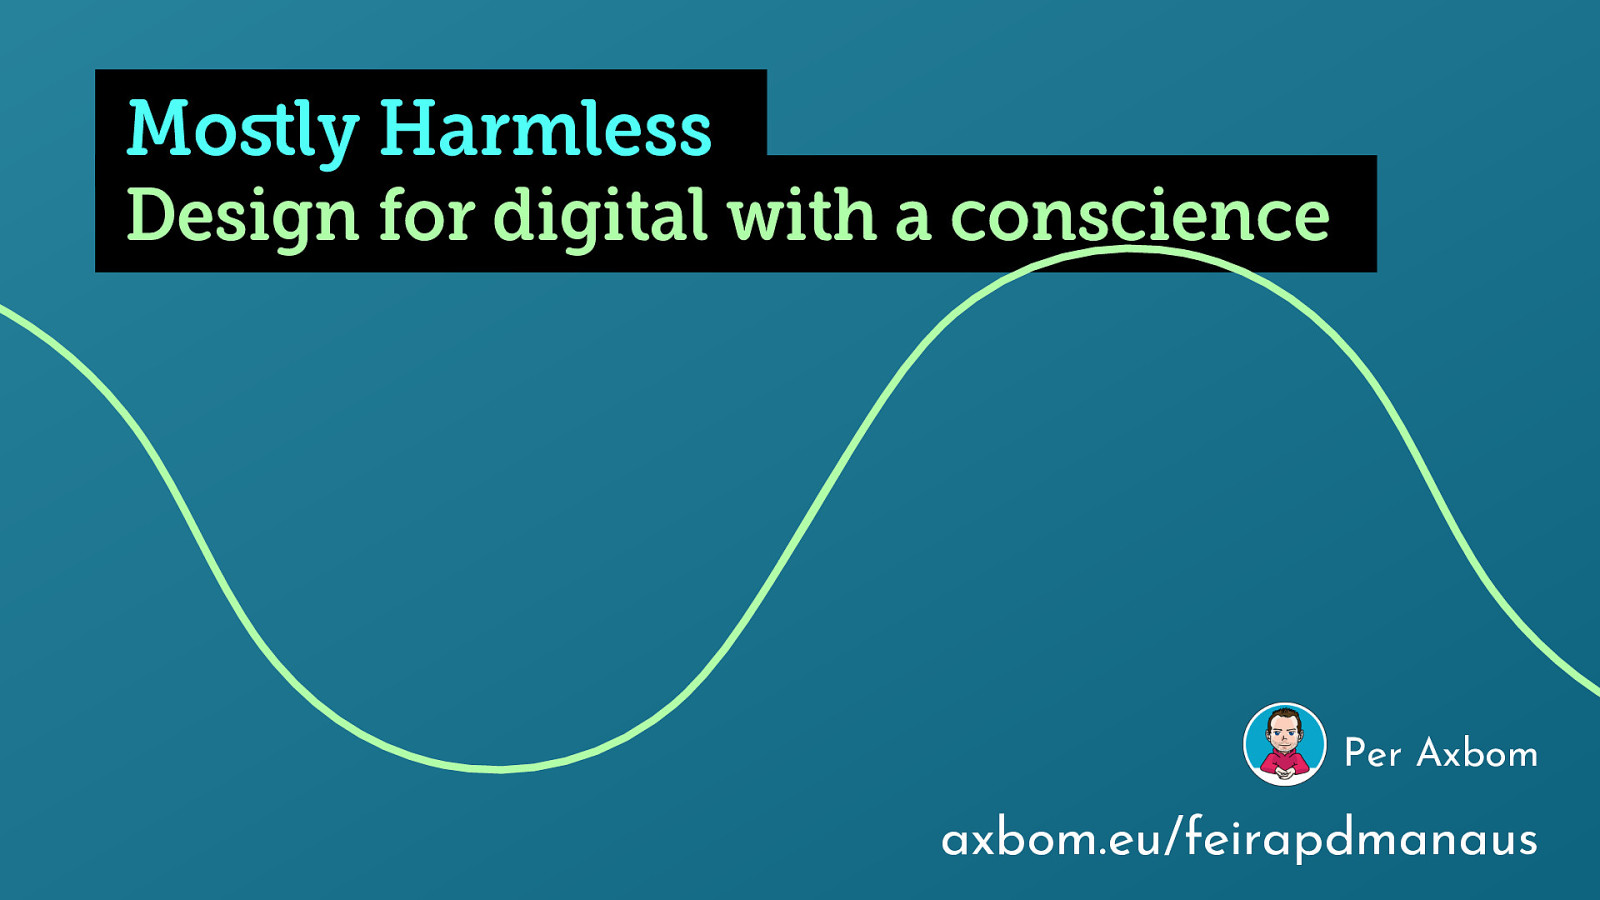 Mostly Harmless: Design for digital with a conscience